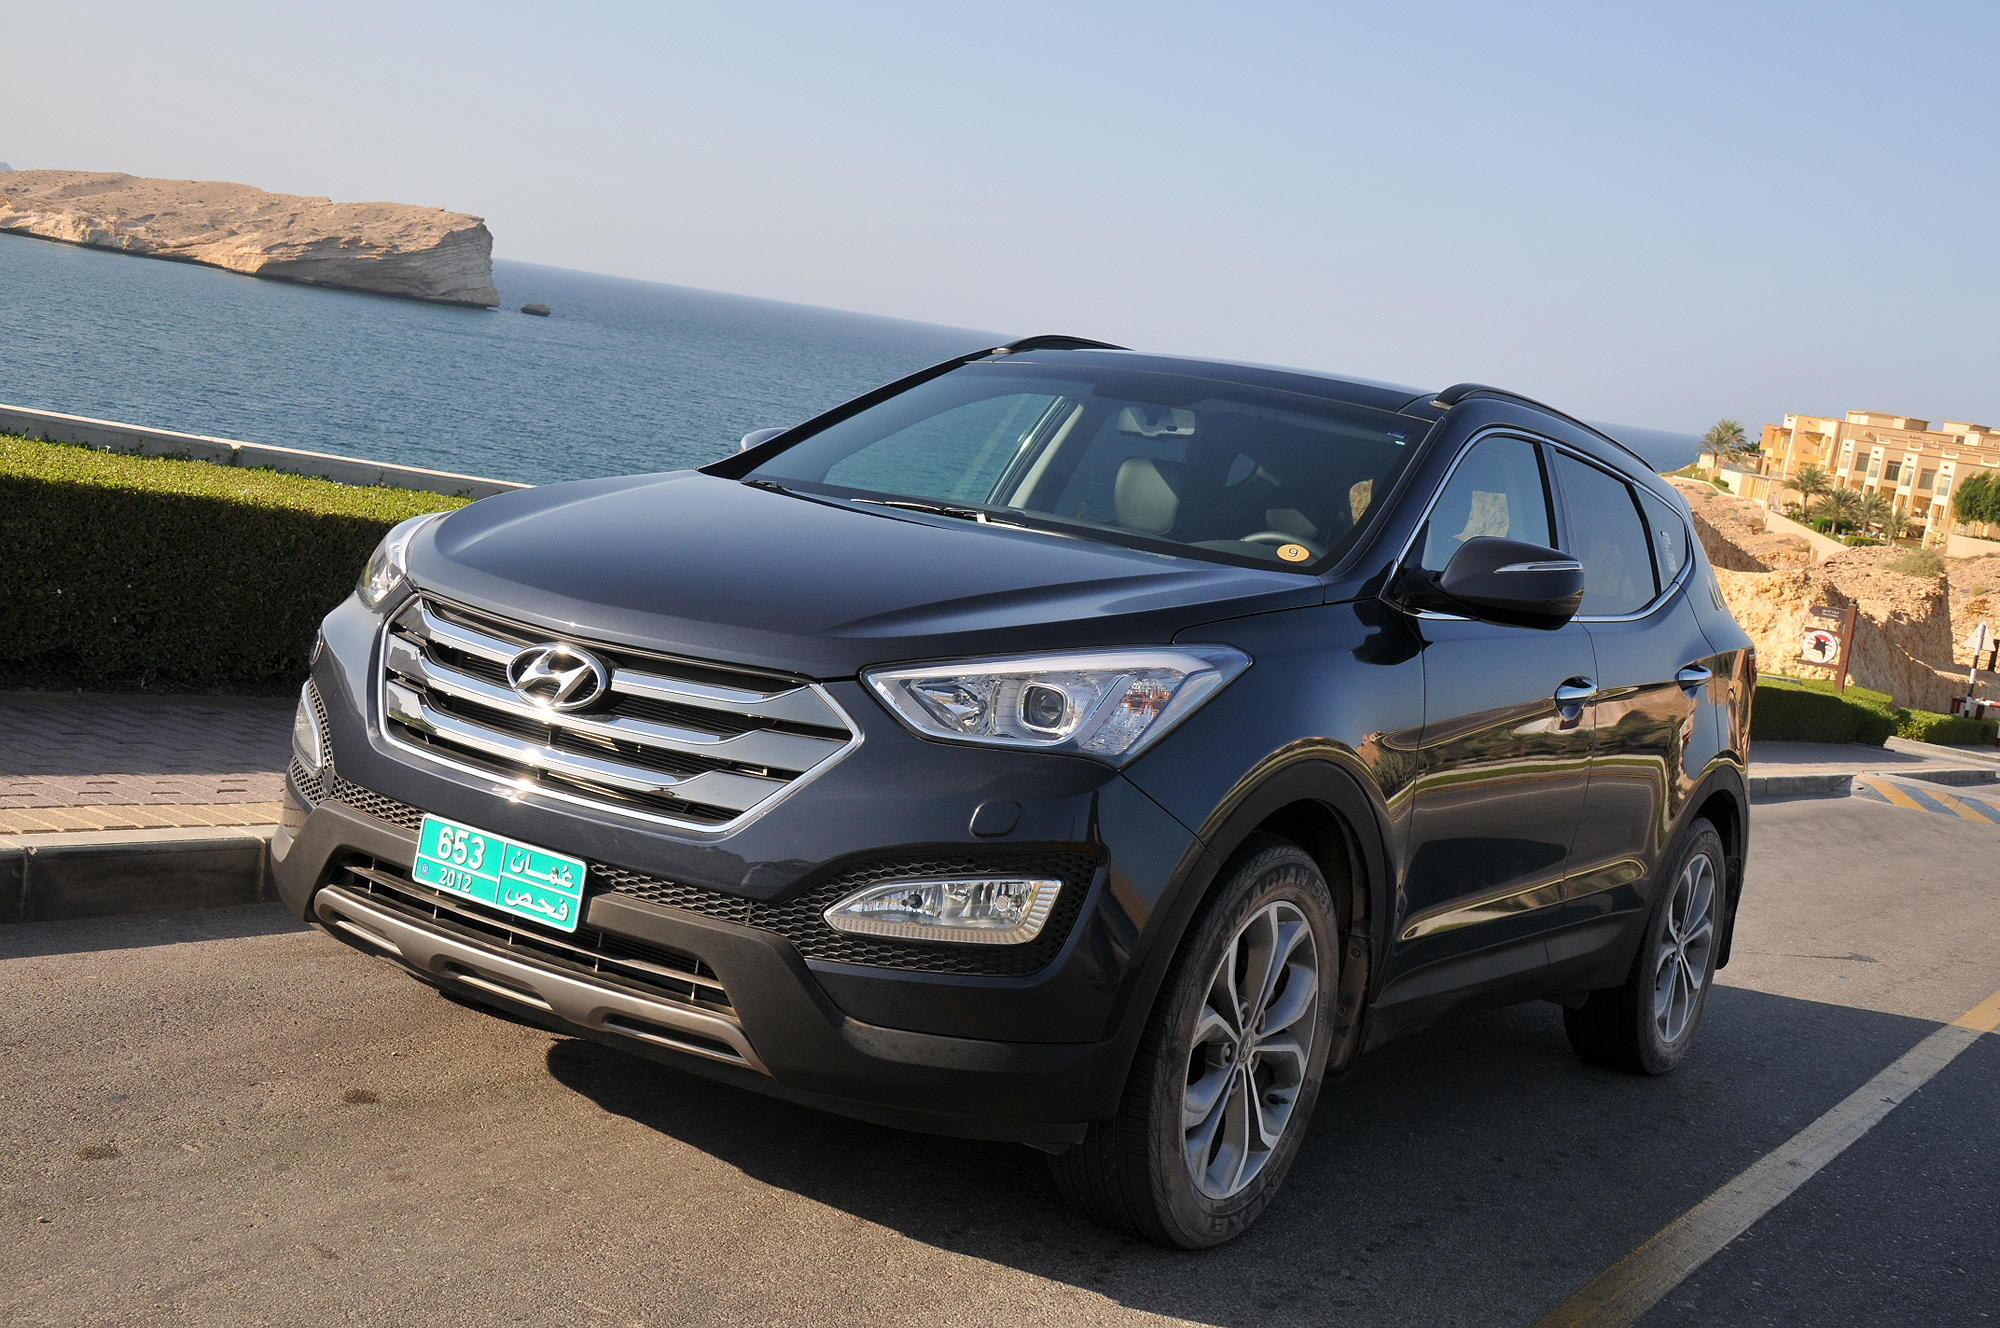 2013 hyundai santa fe now on sale motoring middle east car news reviews and buying. Black Bedroom Furniture Sets. Home Design Ideas